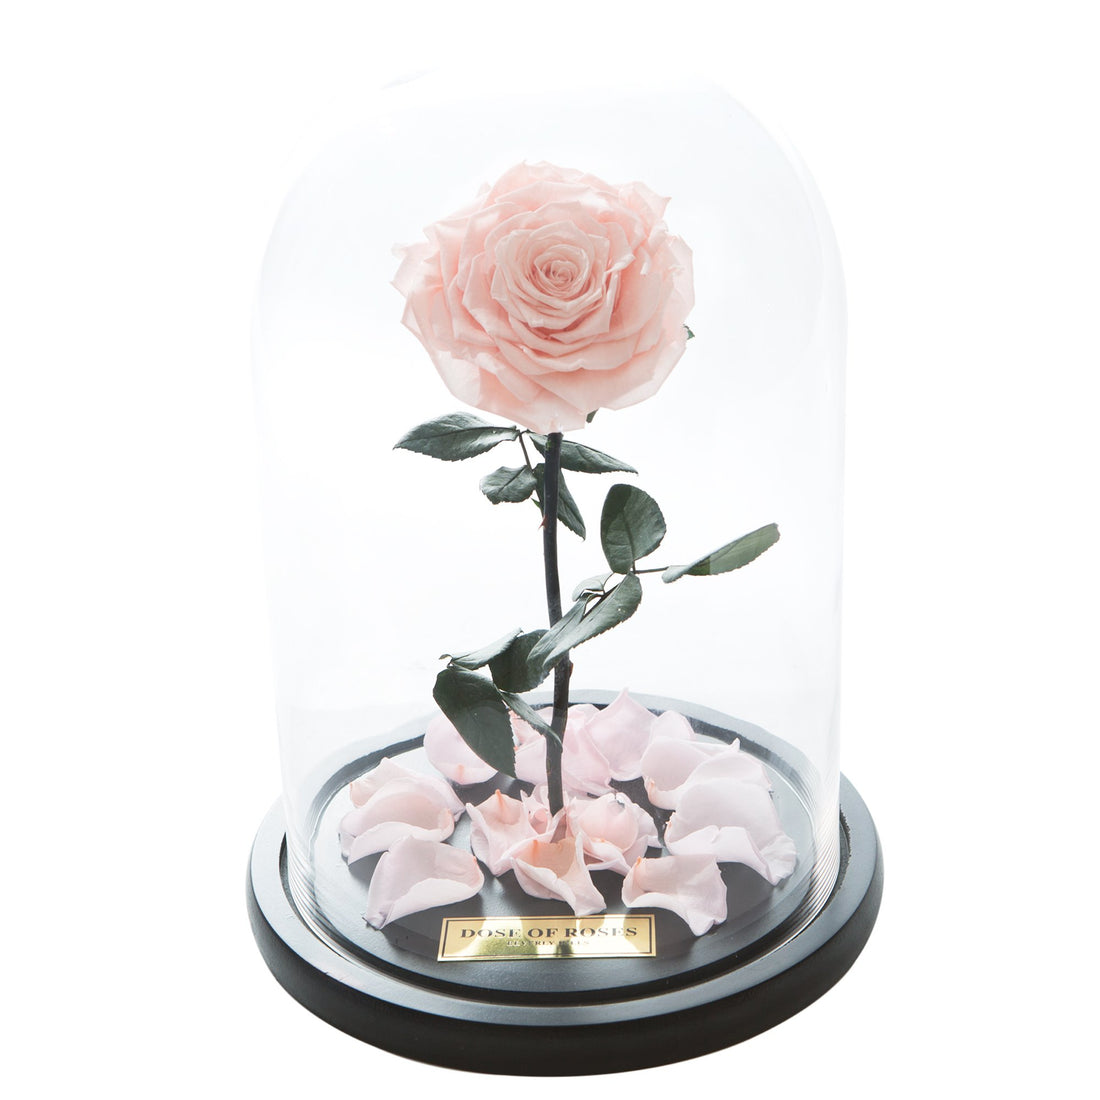 Peach Forbidden Rose in Glass Dome